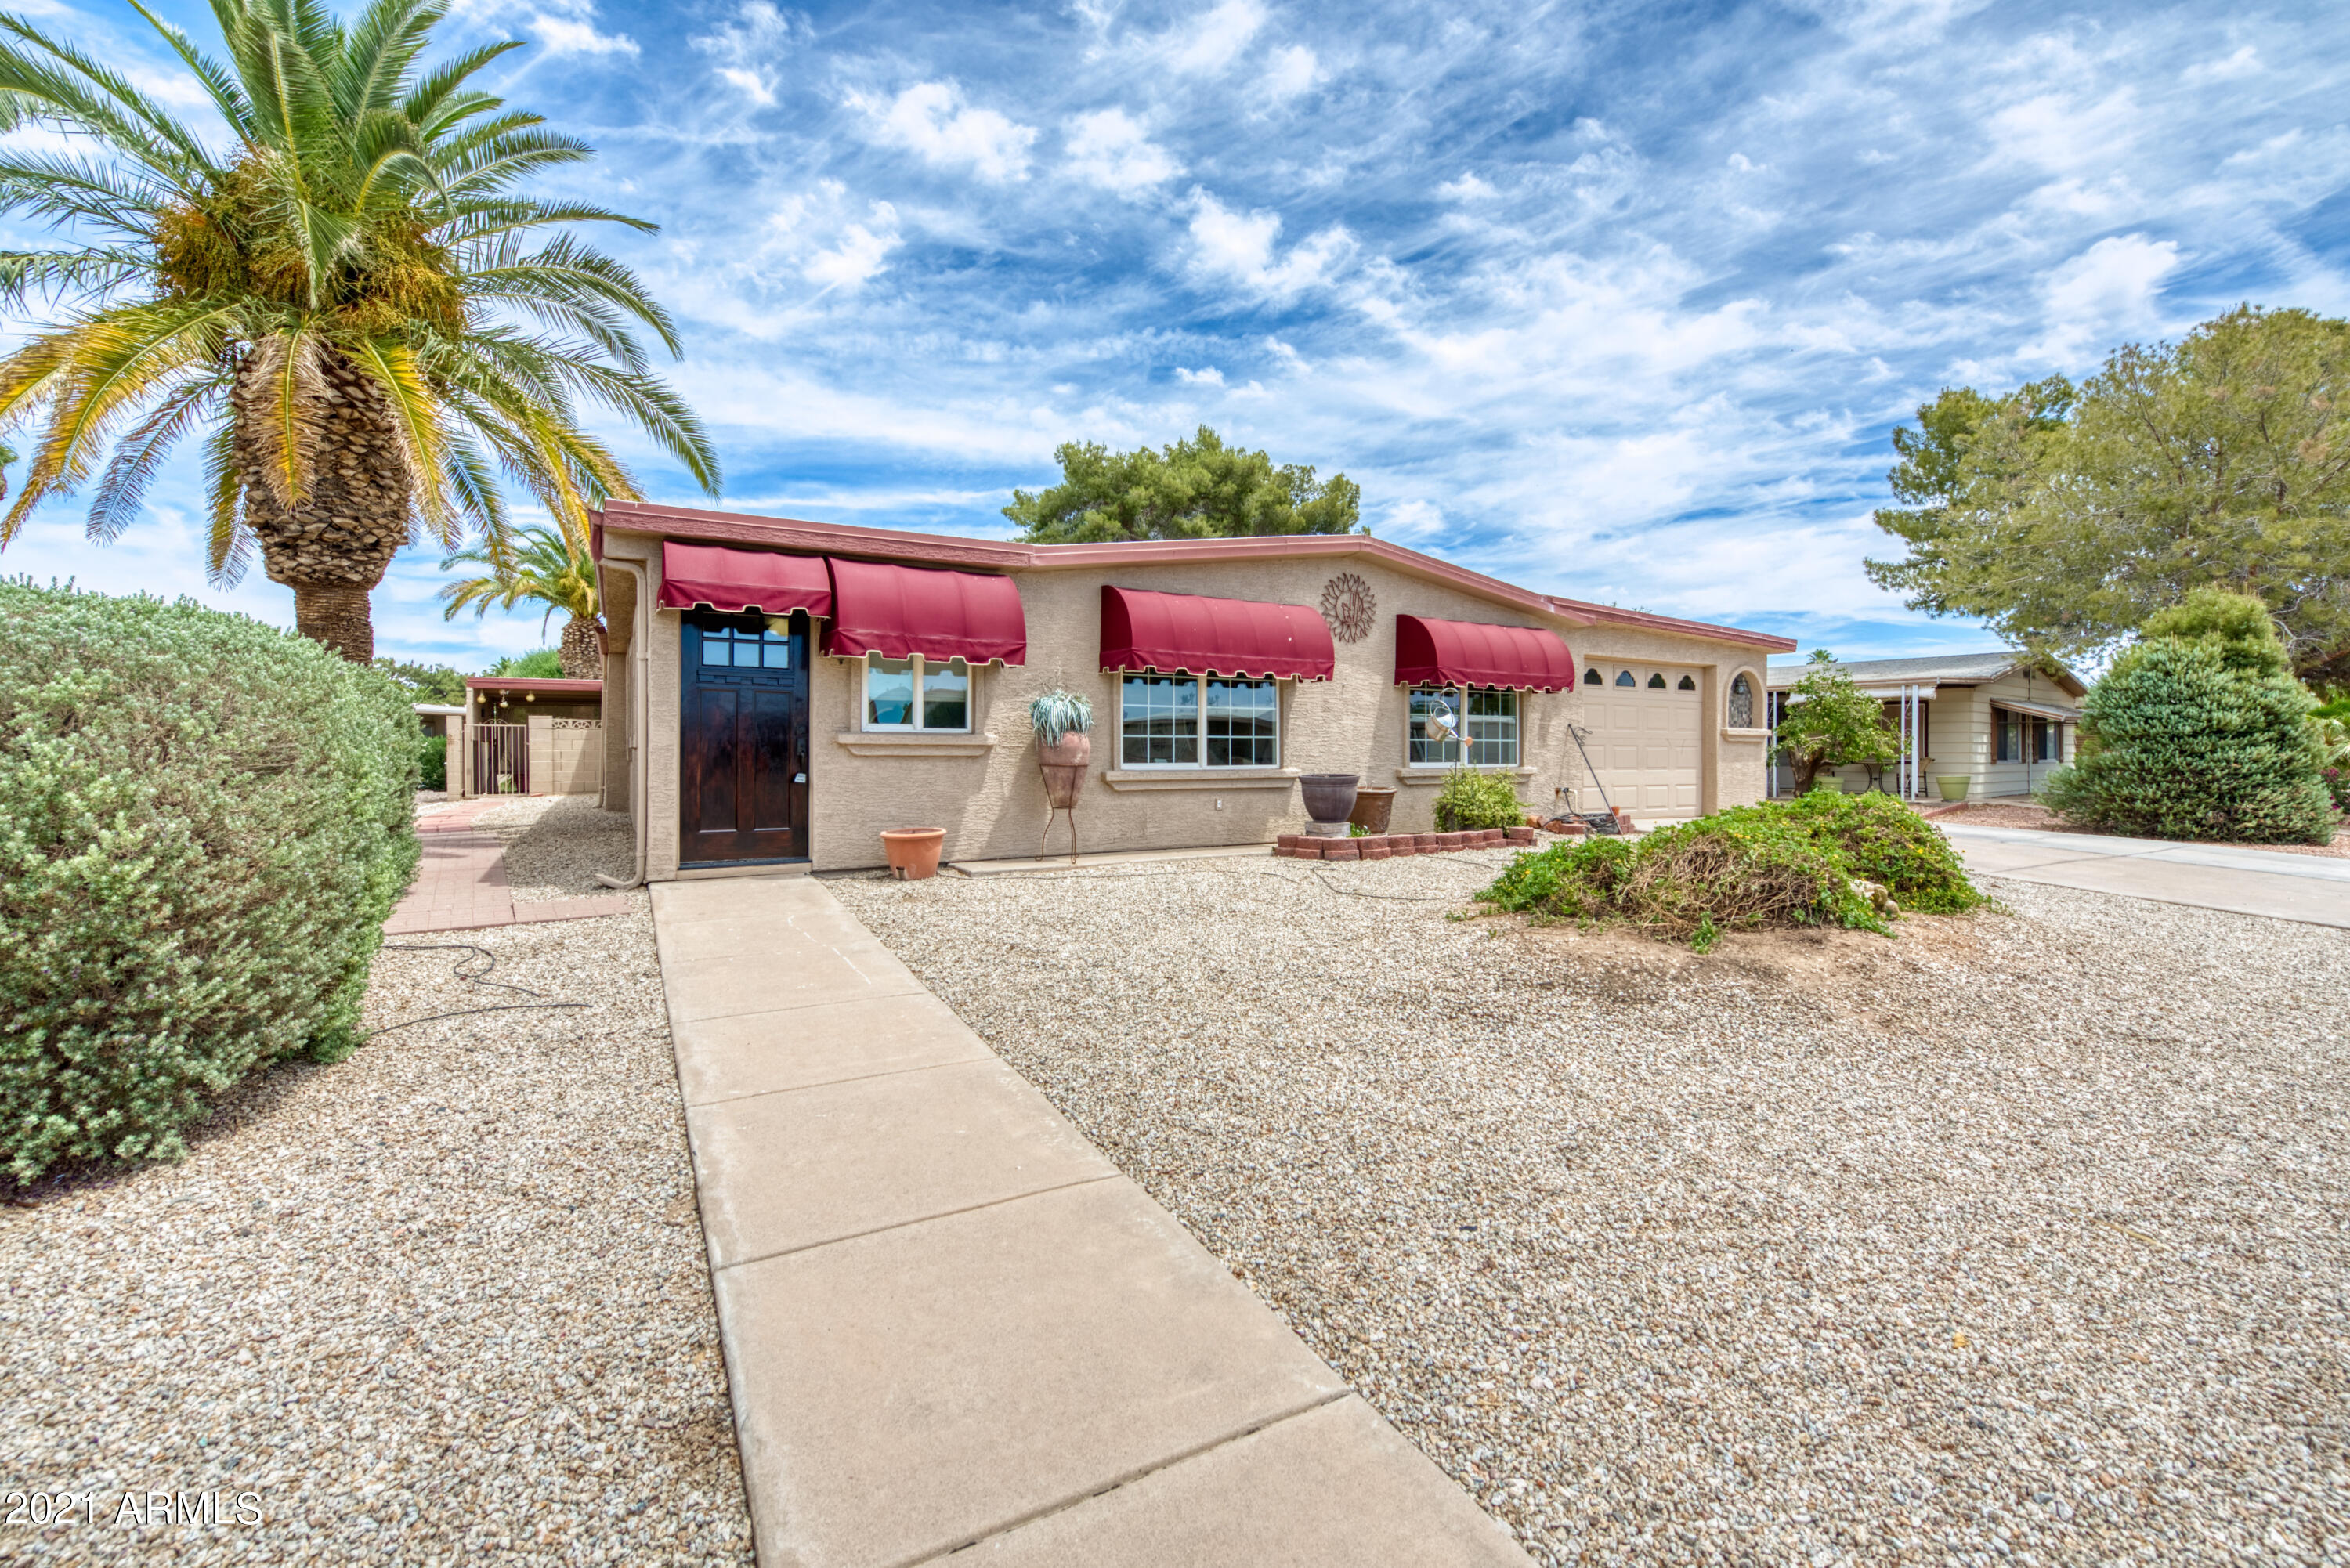 This 1,248sf 2BR/2BA affixed stuccoed mobile home provides a spacious floorplan complete with large kitchen + island/breakfast bar, dining + family room, oversized office/den/flex room, & inside laundry. No interior steps or carpet with only laminate + tile flooring throughout. Step outside to this fully fenced backyard oasis complete with large covered patio, pet-friendly artificial turf, and, yes ... a sparkling, private pool! Find two generously sized exterior storage spaces, enclosed carport with built-in shelving + garage door, all offering plenty of room inside & out. This sought-after active-adult subdivision offers its own clubhouse, lakes, golf, tennis, pickleball & fitness center. Close to nearby Sun Lakes amenities, shopping, restaurants and more!